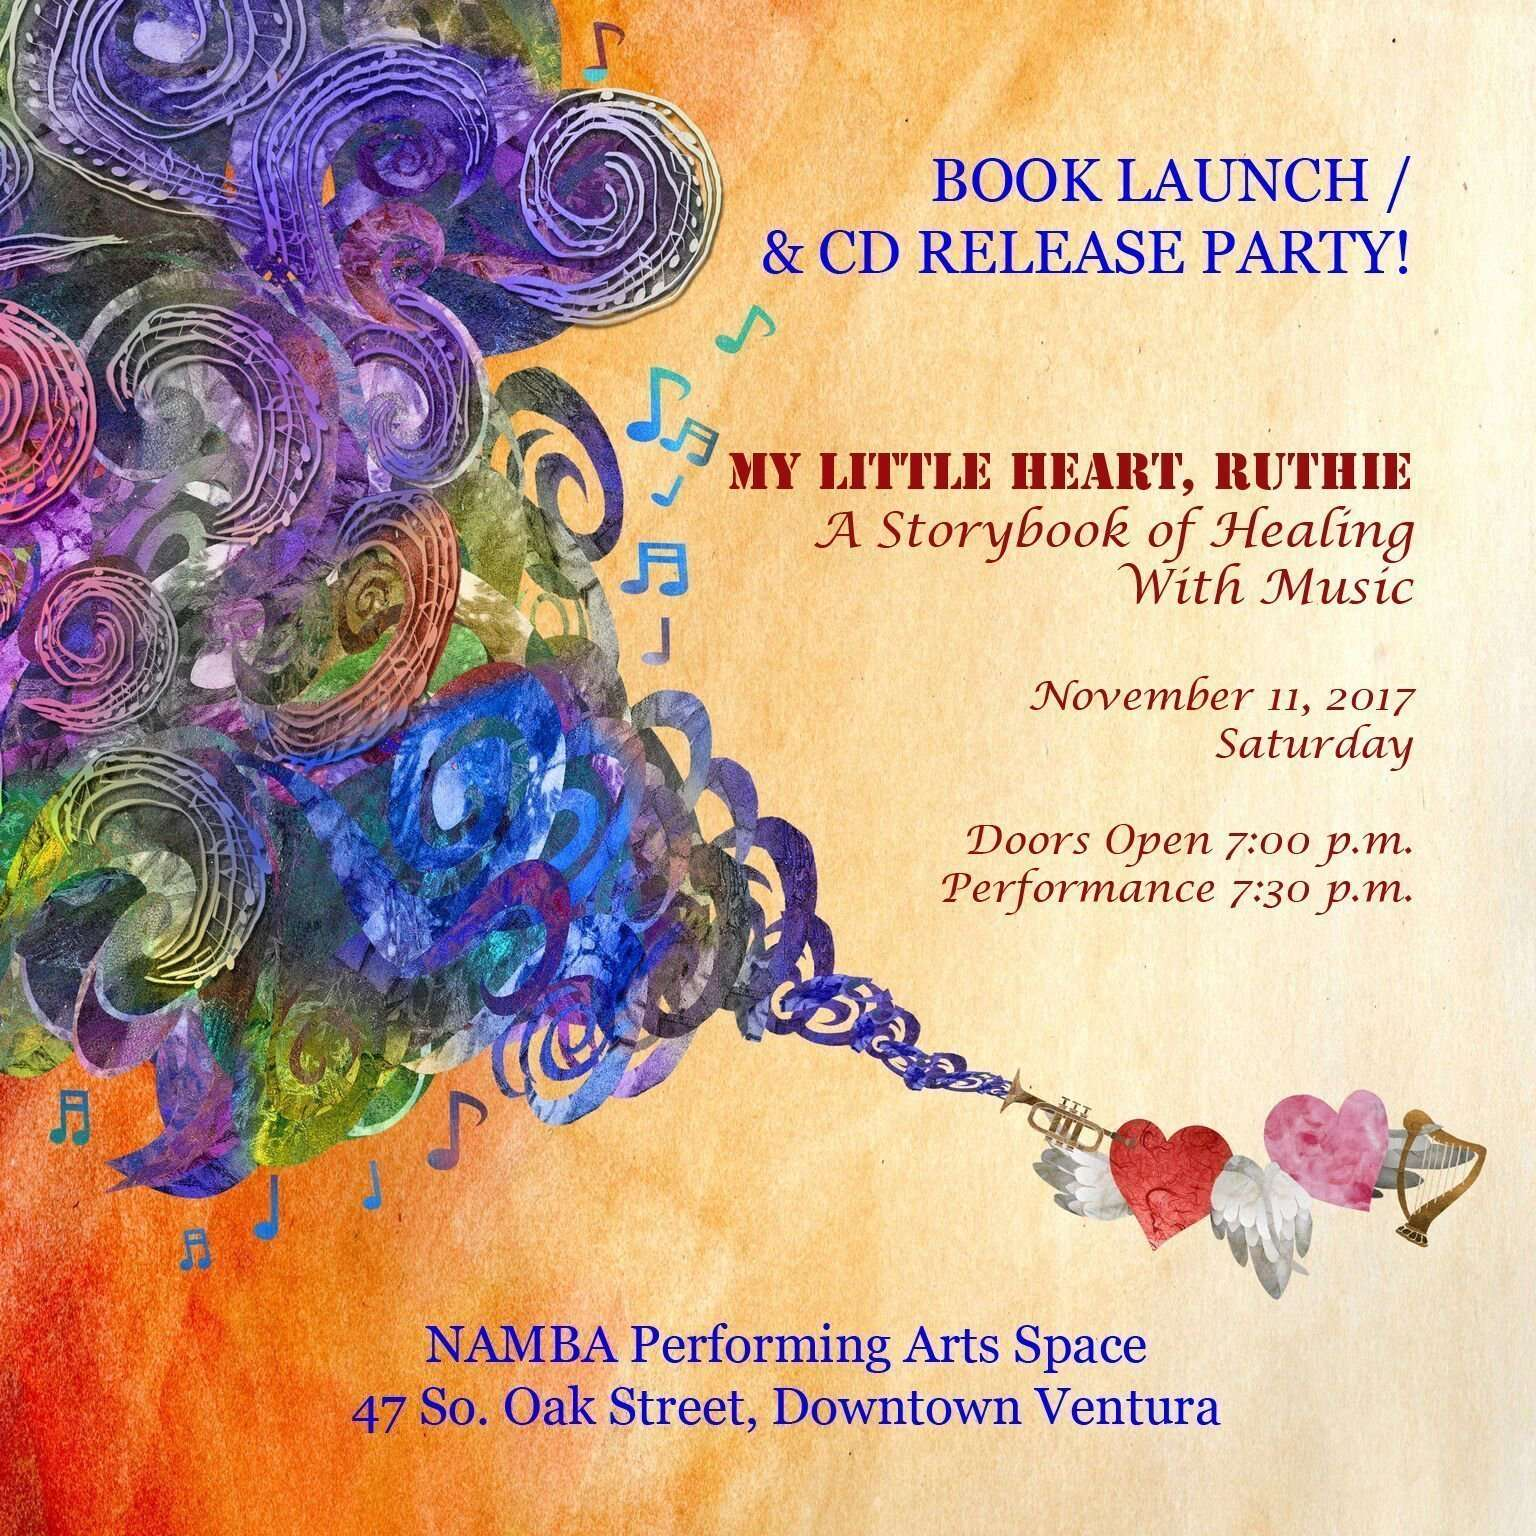 My Little Heart, Ruthie release party